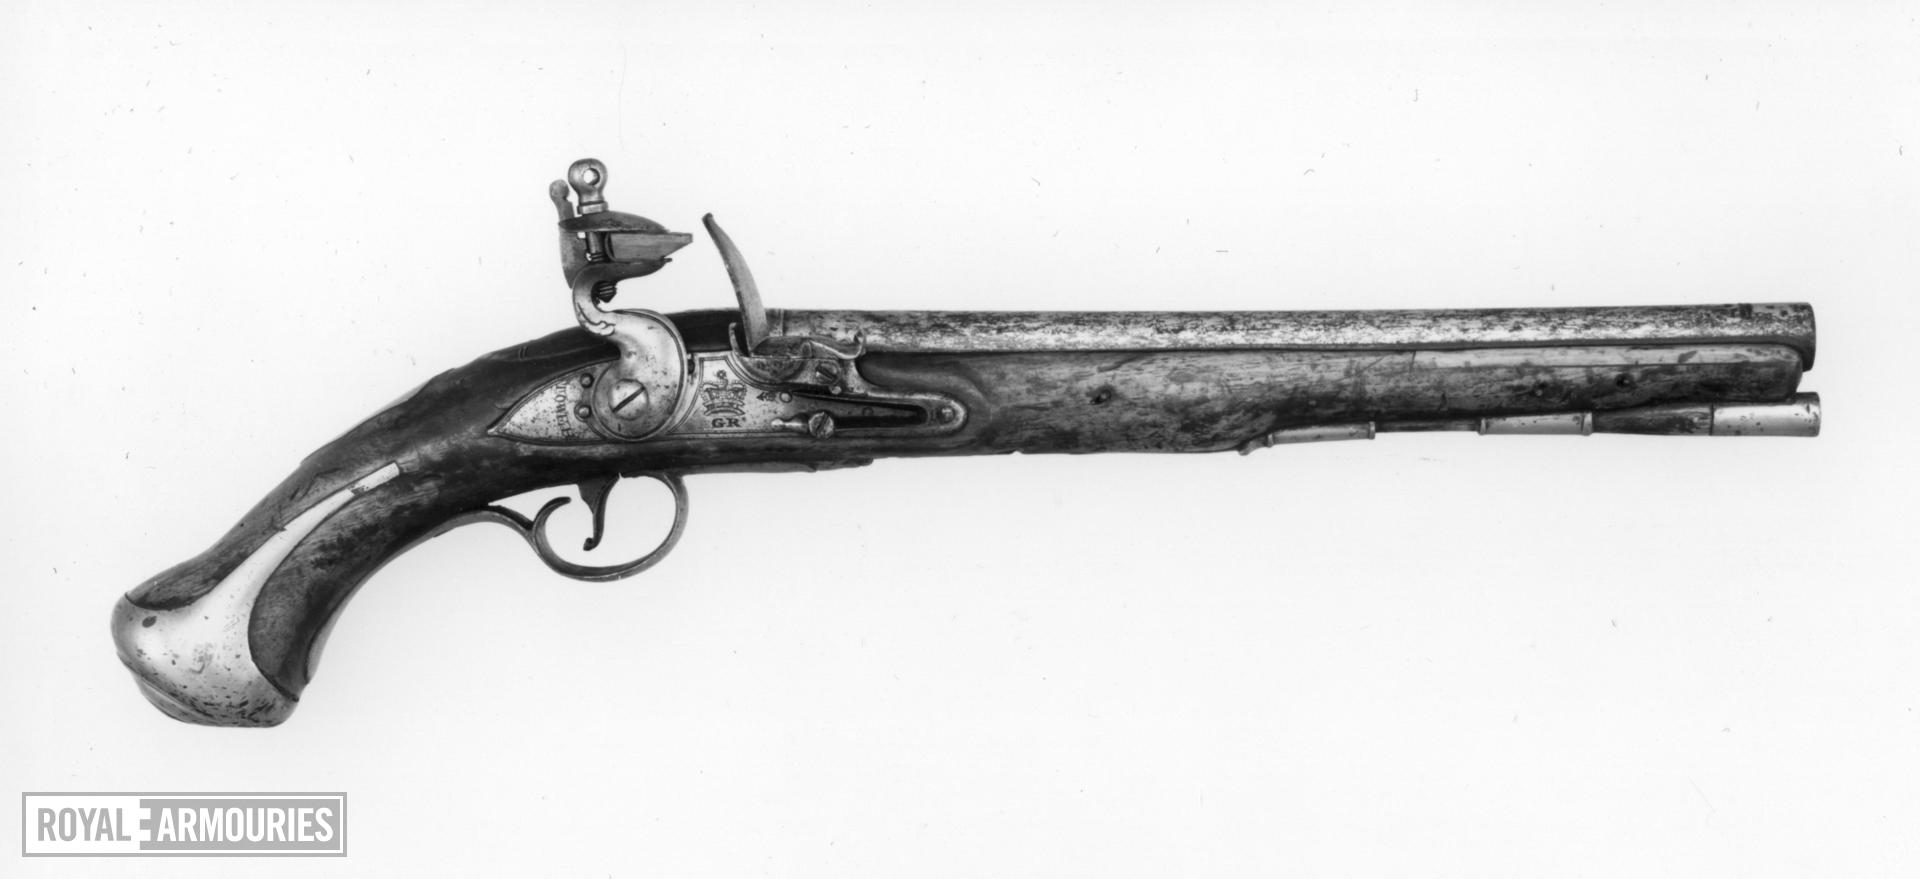 Flintlock military pistol - Heavy Cavalry Model For the 3rd Dragoon Guards